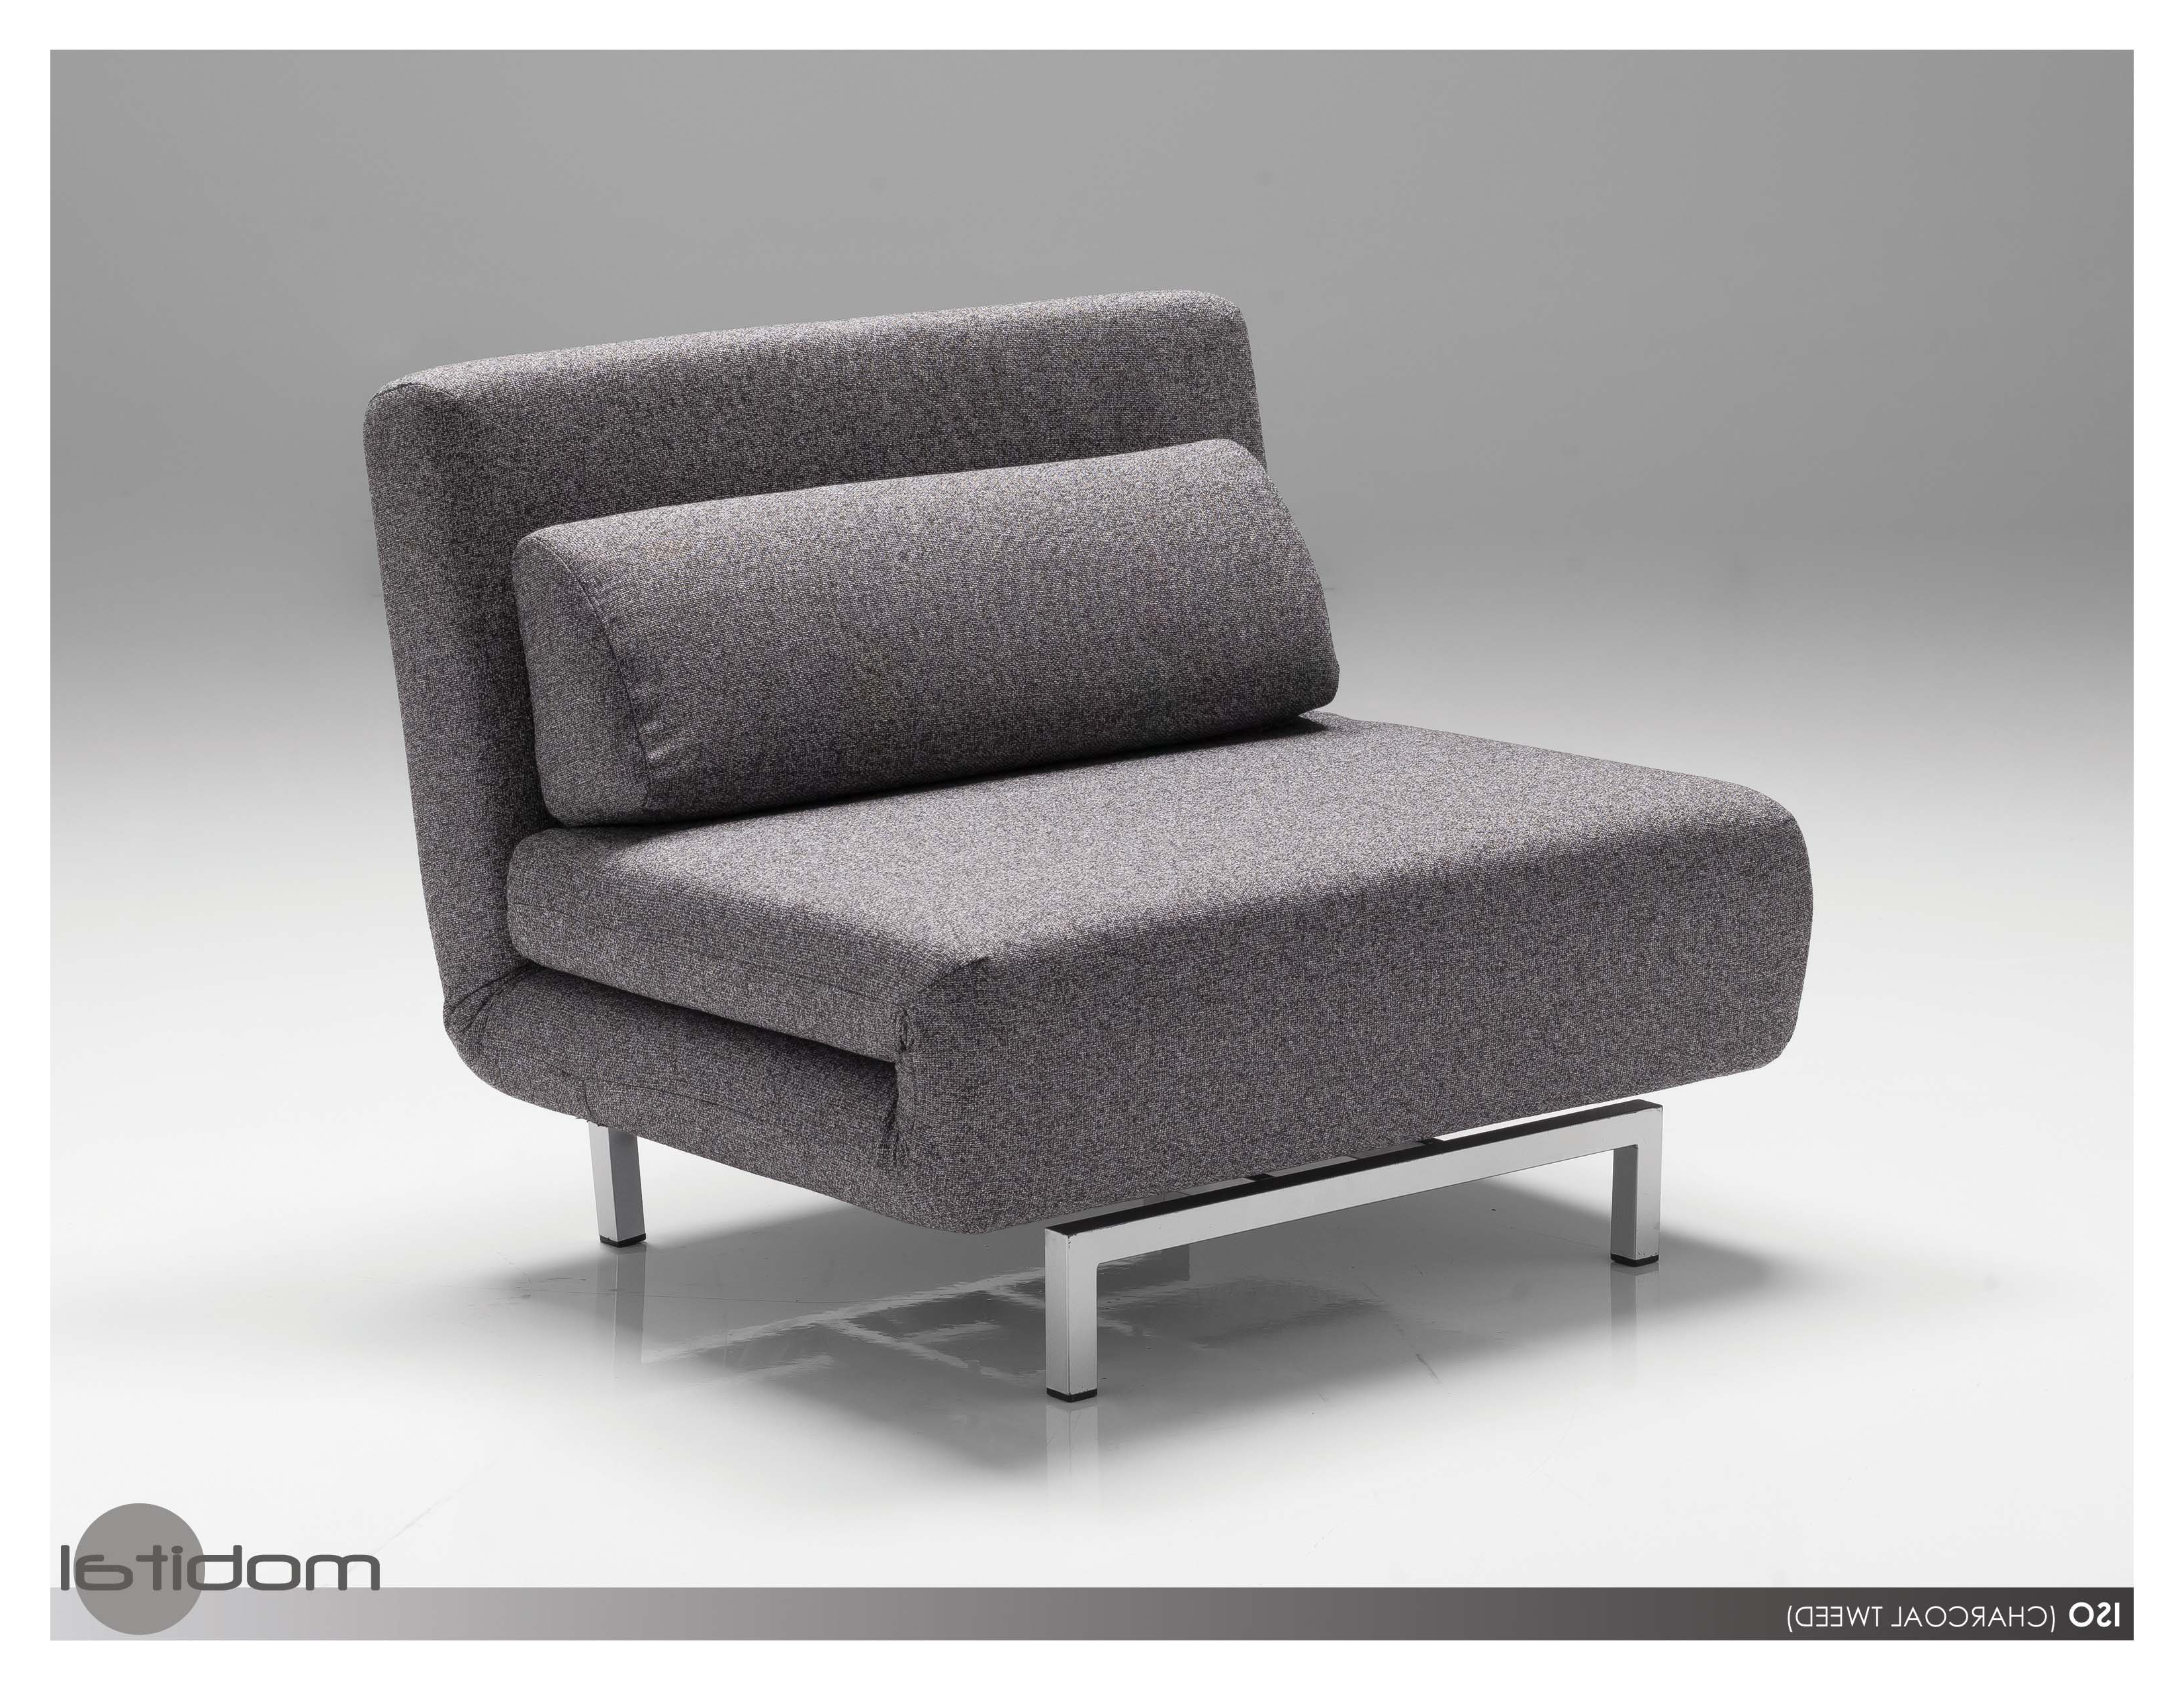 Mobital Iso Sofabed Single Modern Furnishings Inside Well Known Single Chair Sofa Bed (View 8 of 20)